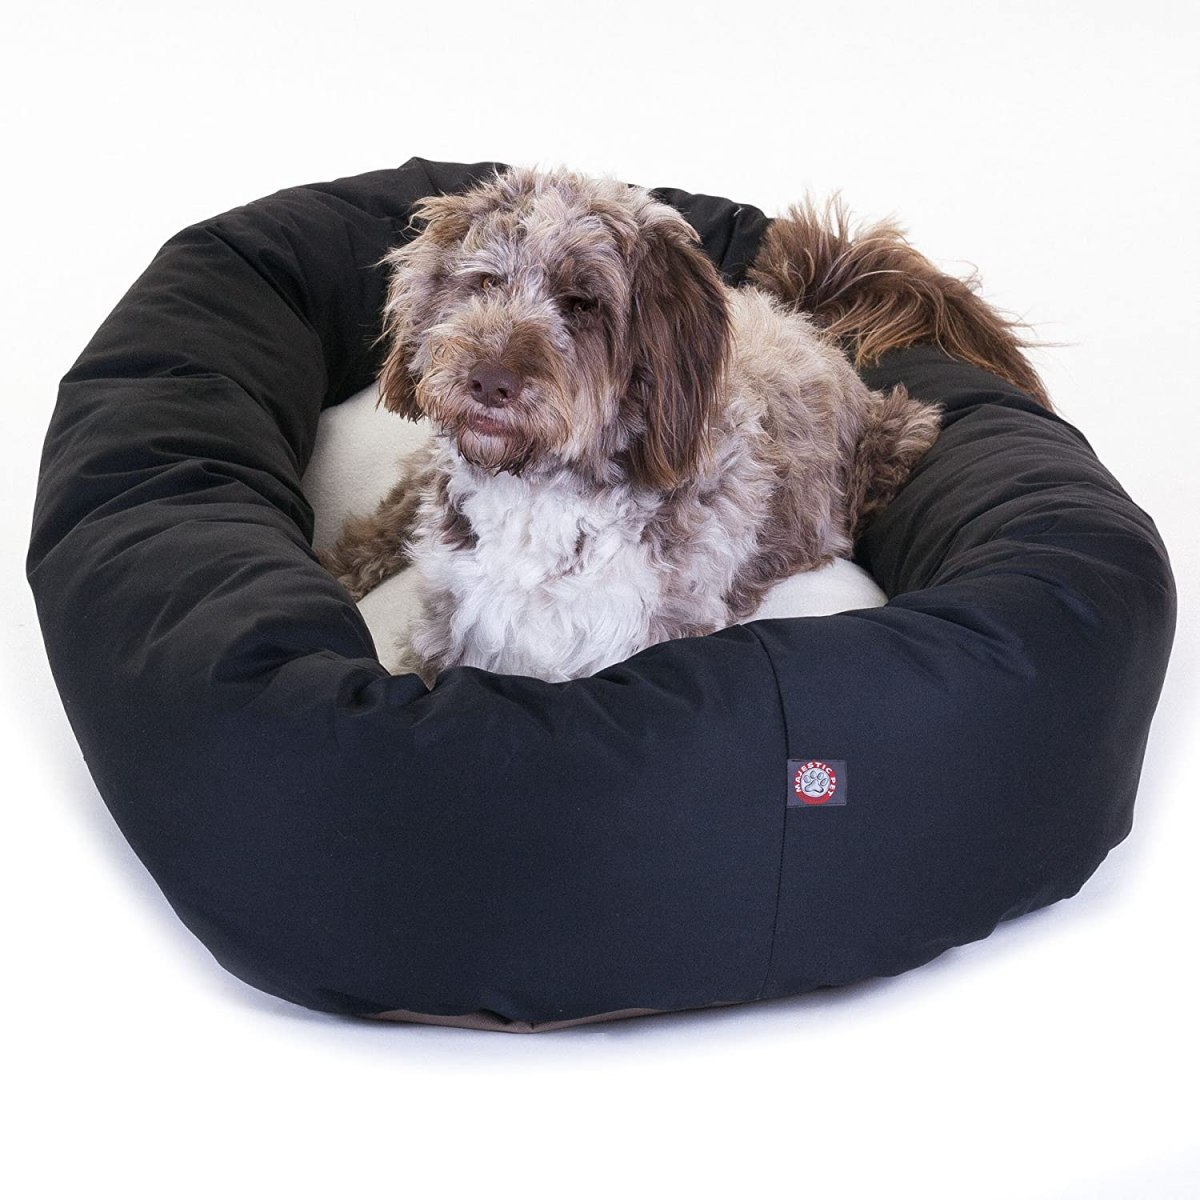 Best Dog Bed